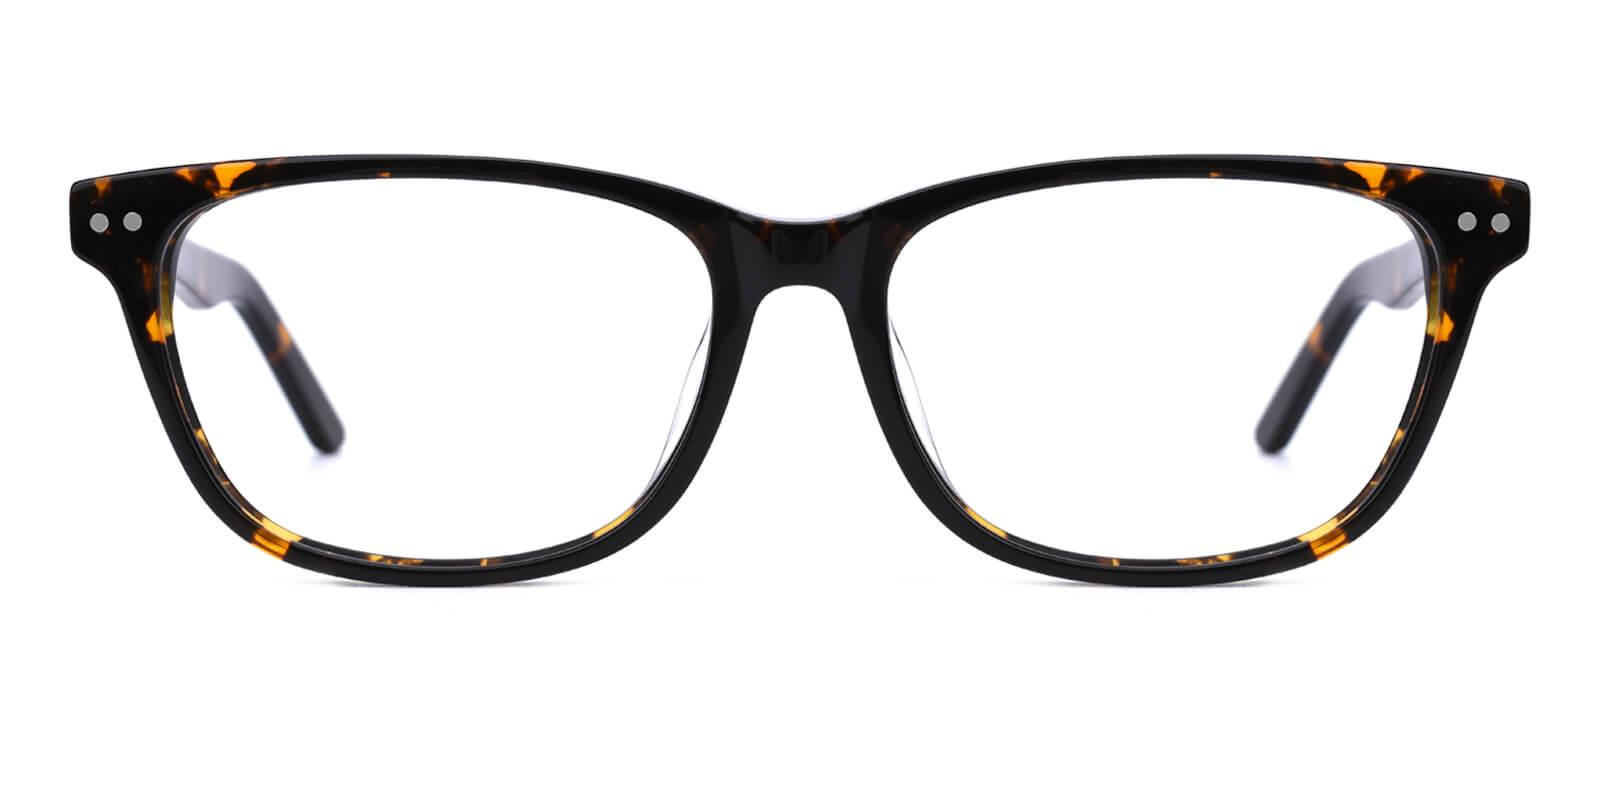 Prologue-Tortoise-Rectangle-Acetate-Eyeglasses-additional2